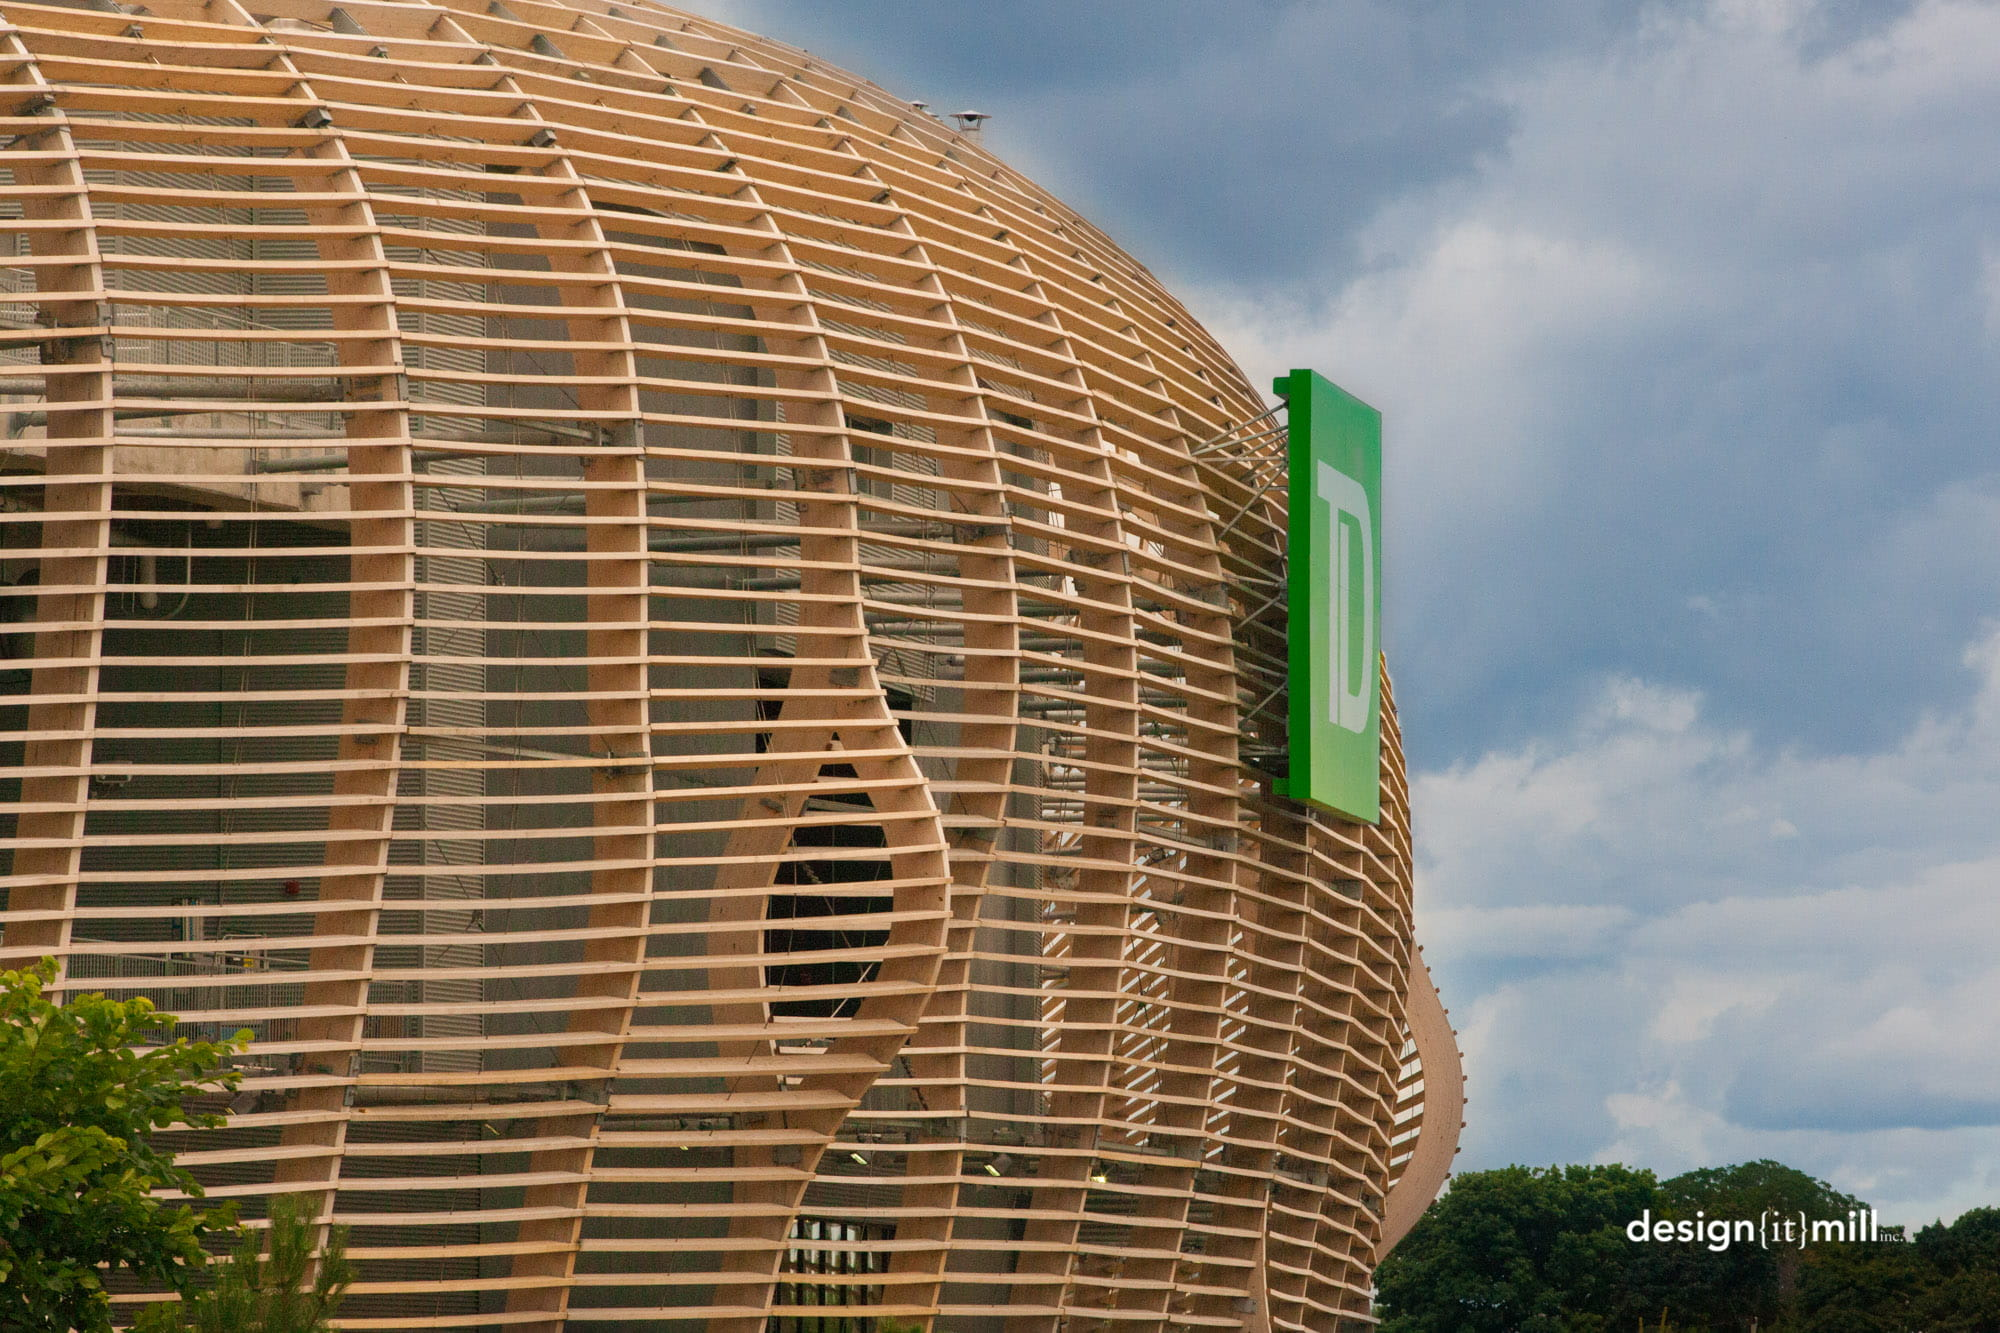 Fachada de madera en el Estadio TD Place de Ottawa, Canadá (Fotografía: © Mark Cichy, Design It Mill)